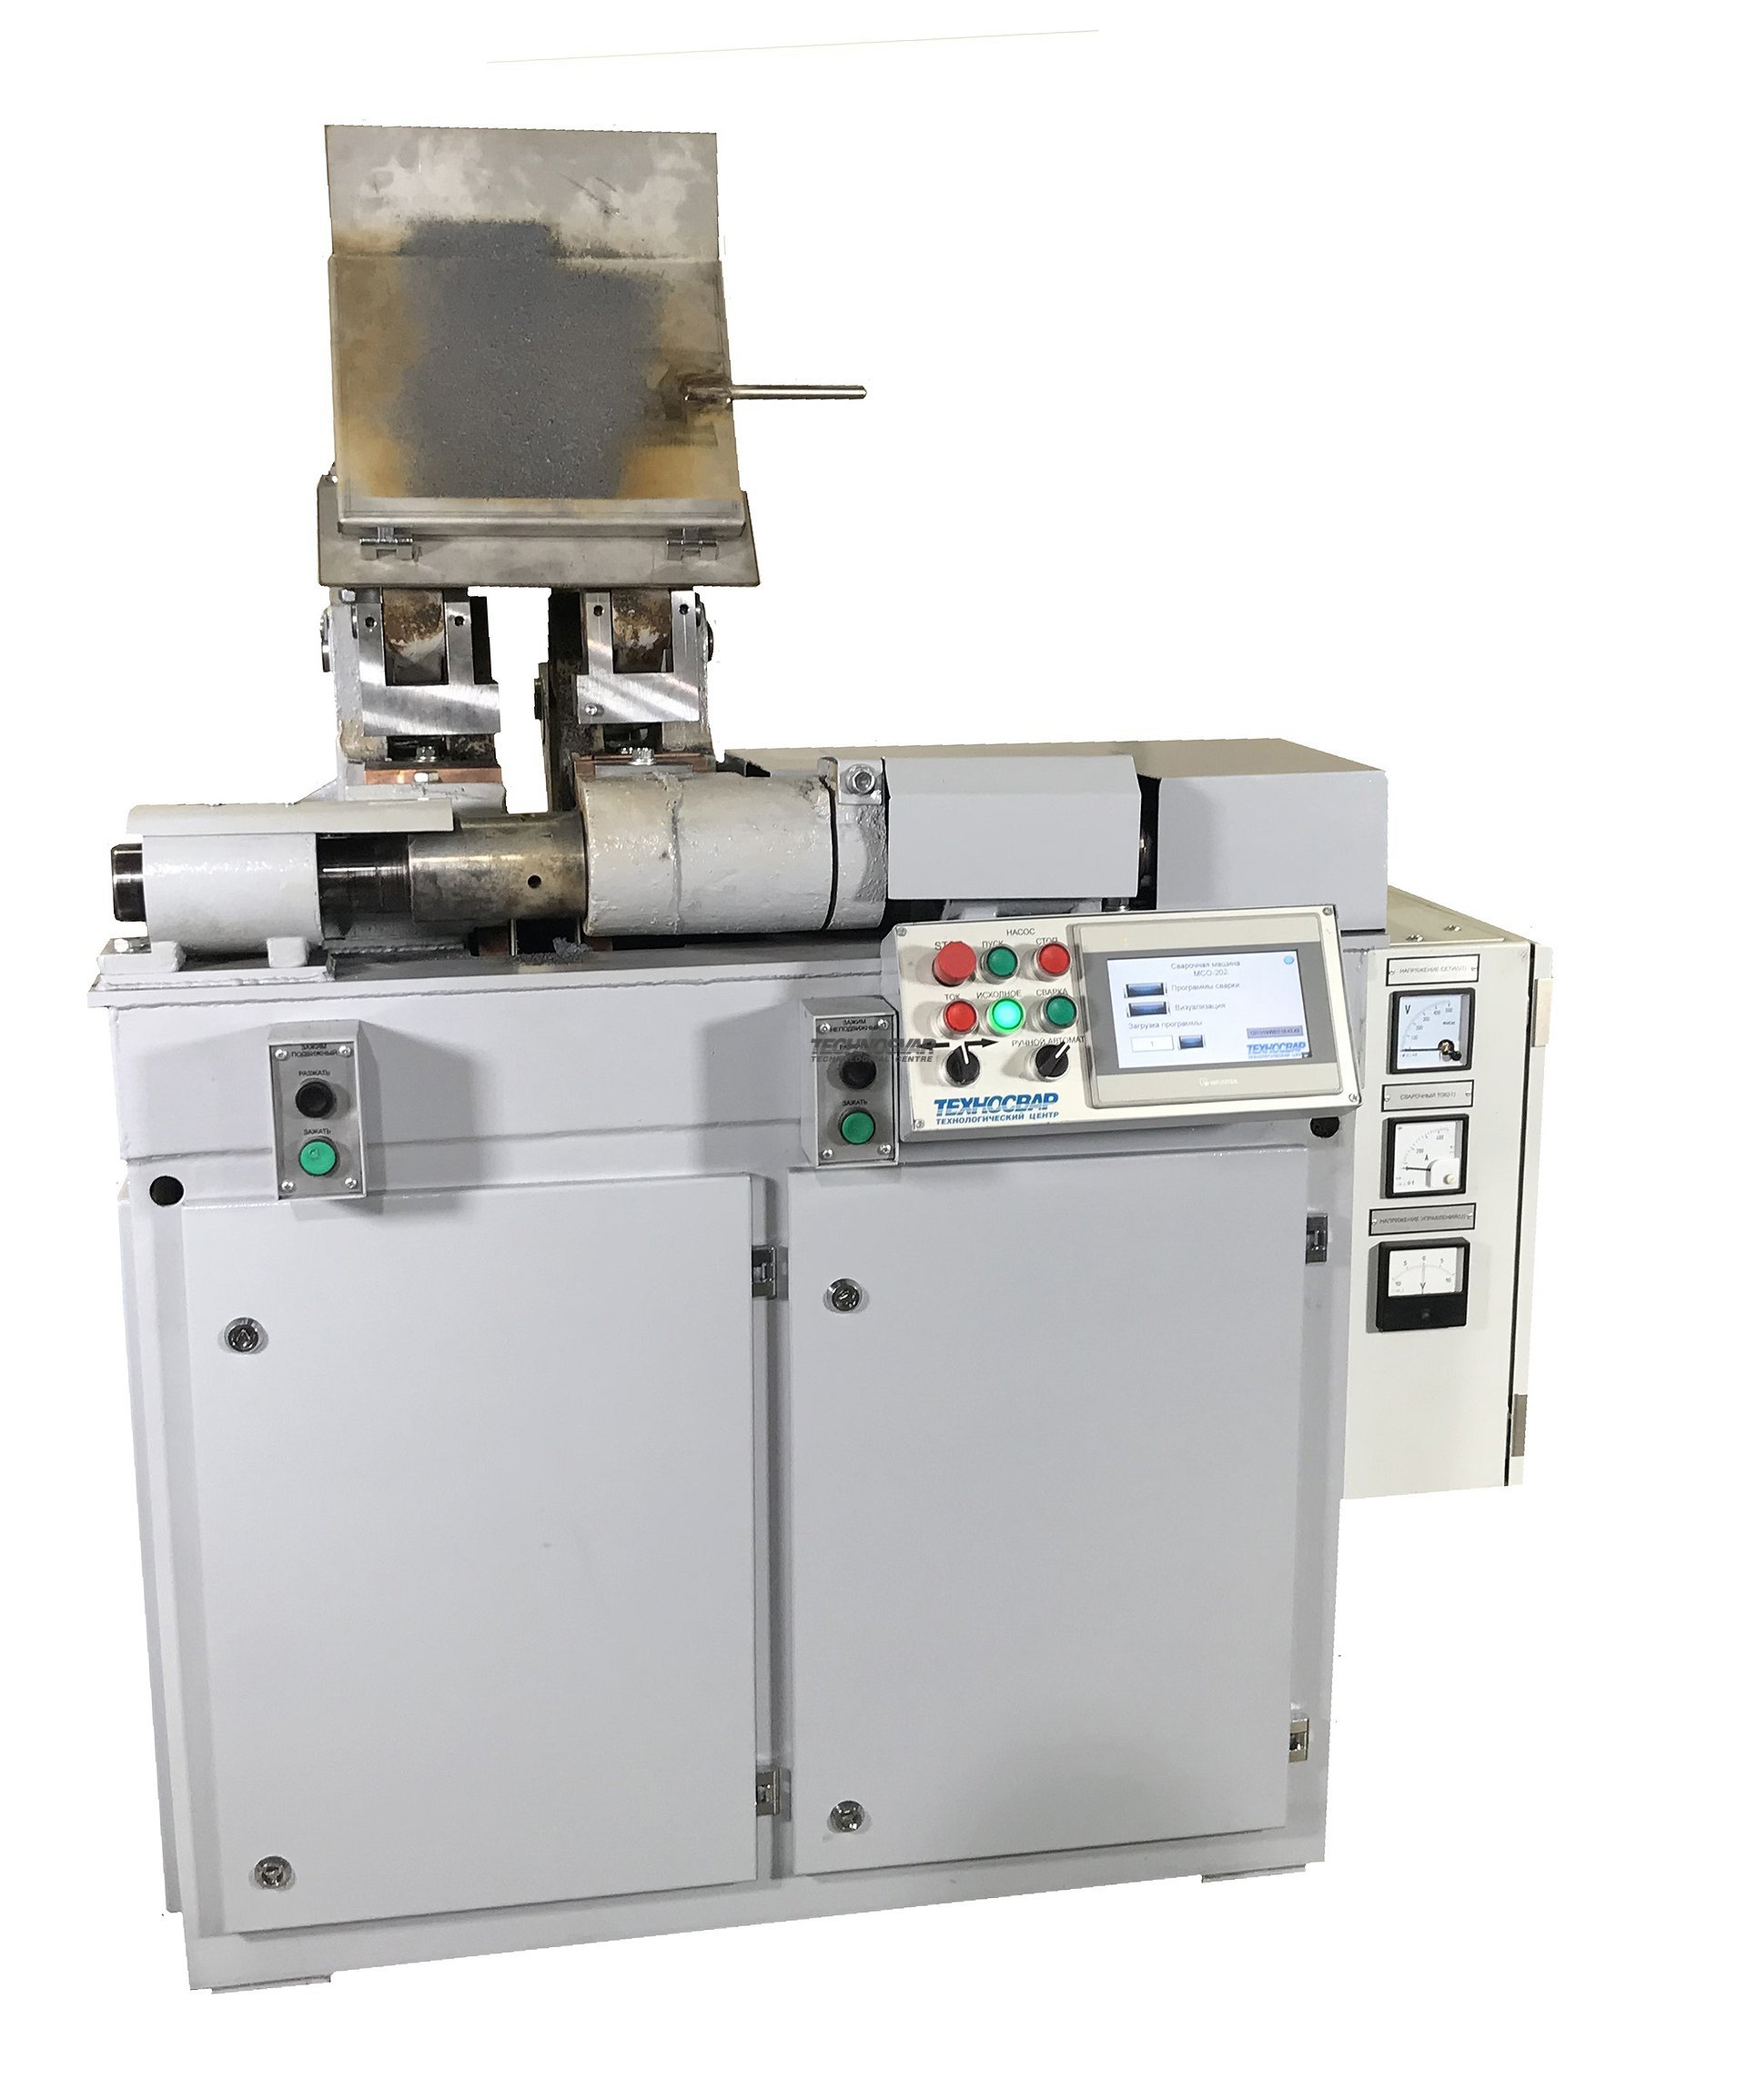 MSO-202 RESISTANCE BUTT WELDING MACHINE (CURRENT ALTERNATIVE TO MSO-201)